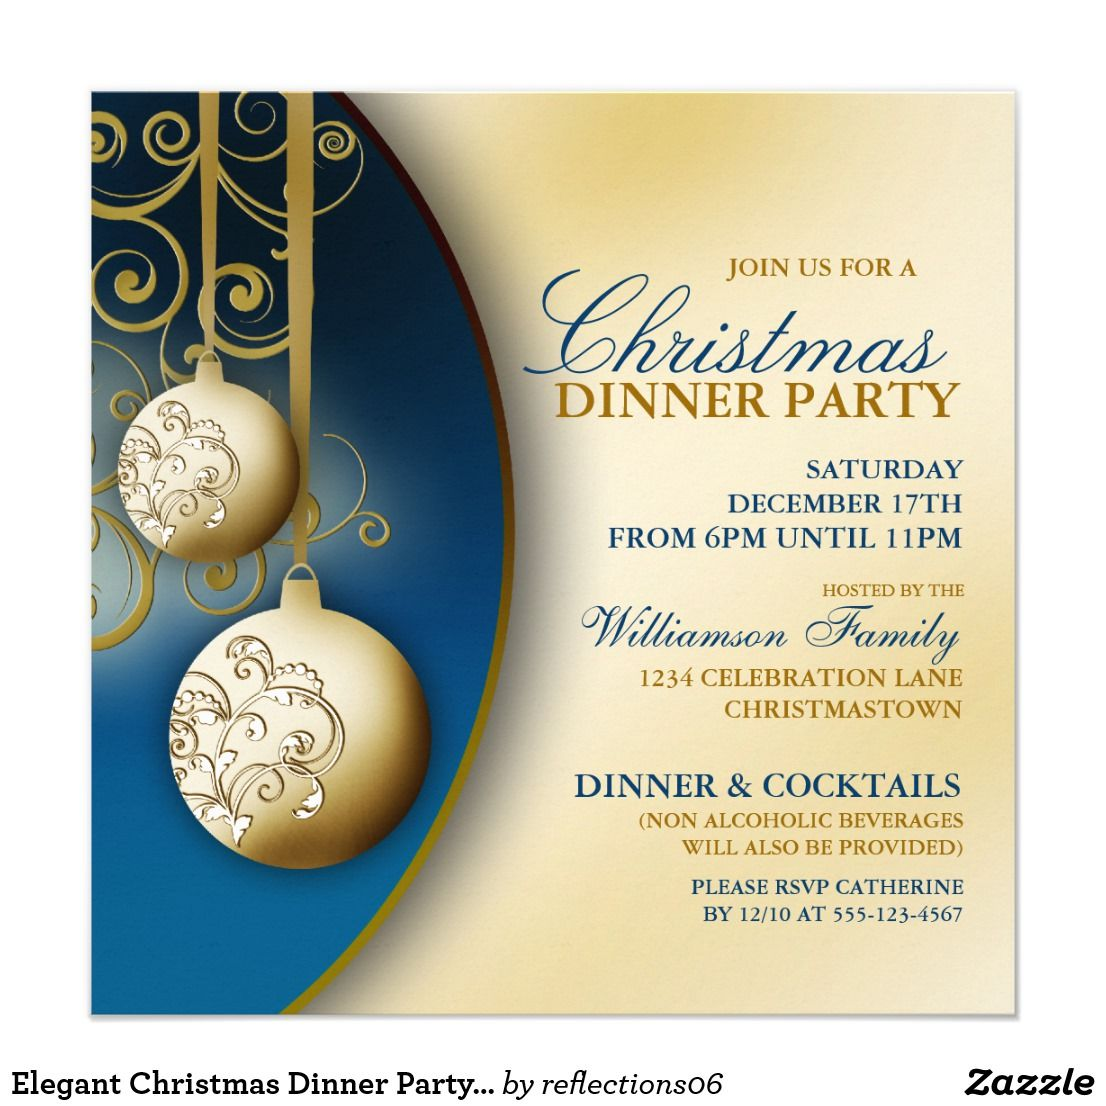 Elegant Christmas Dinner Party